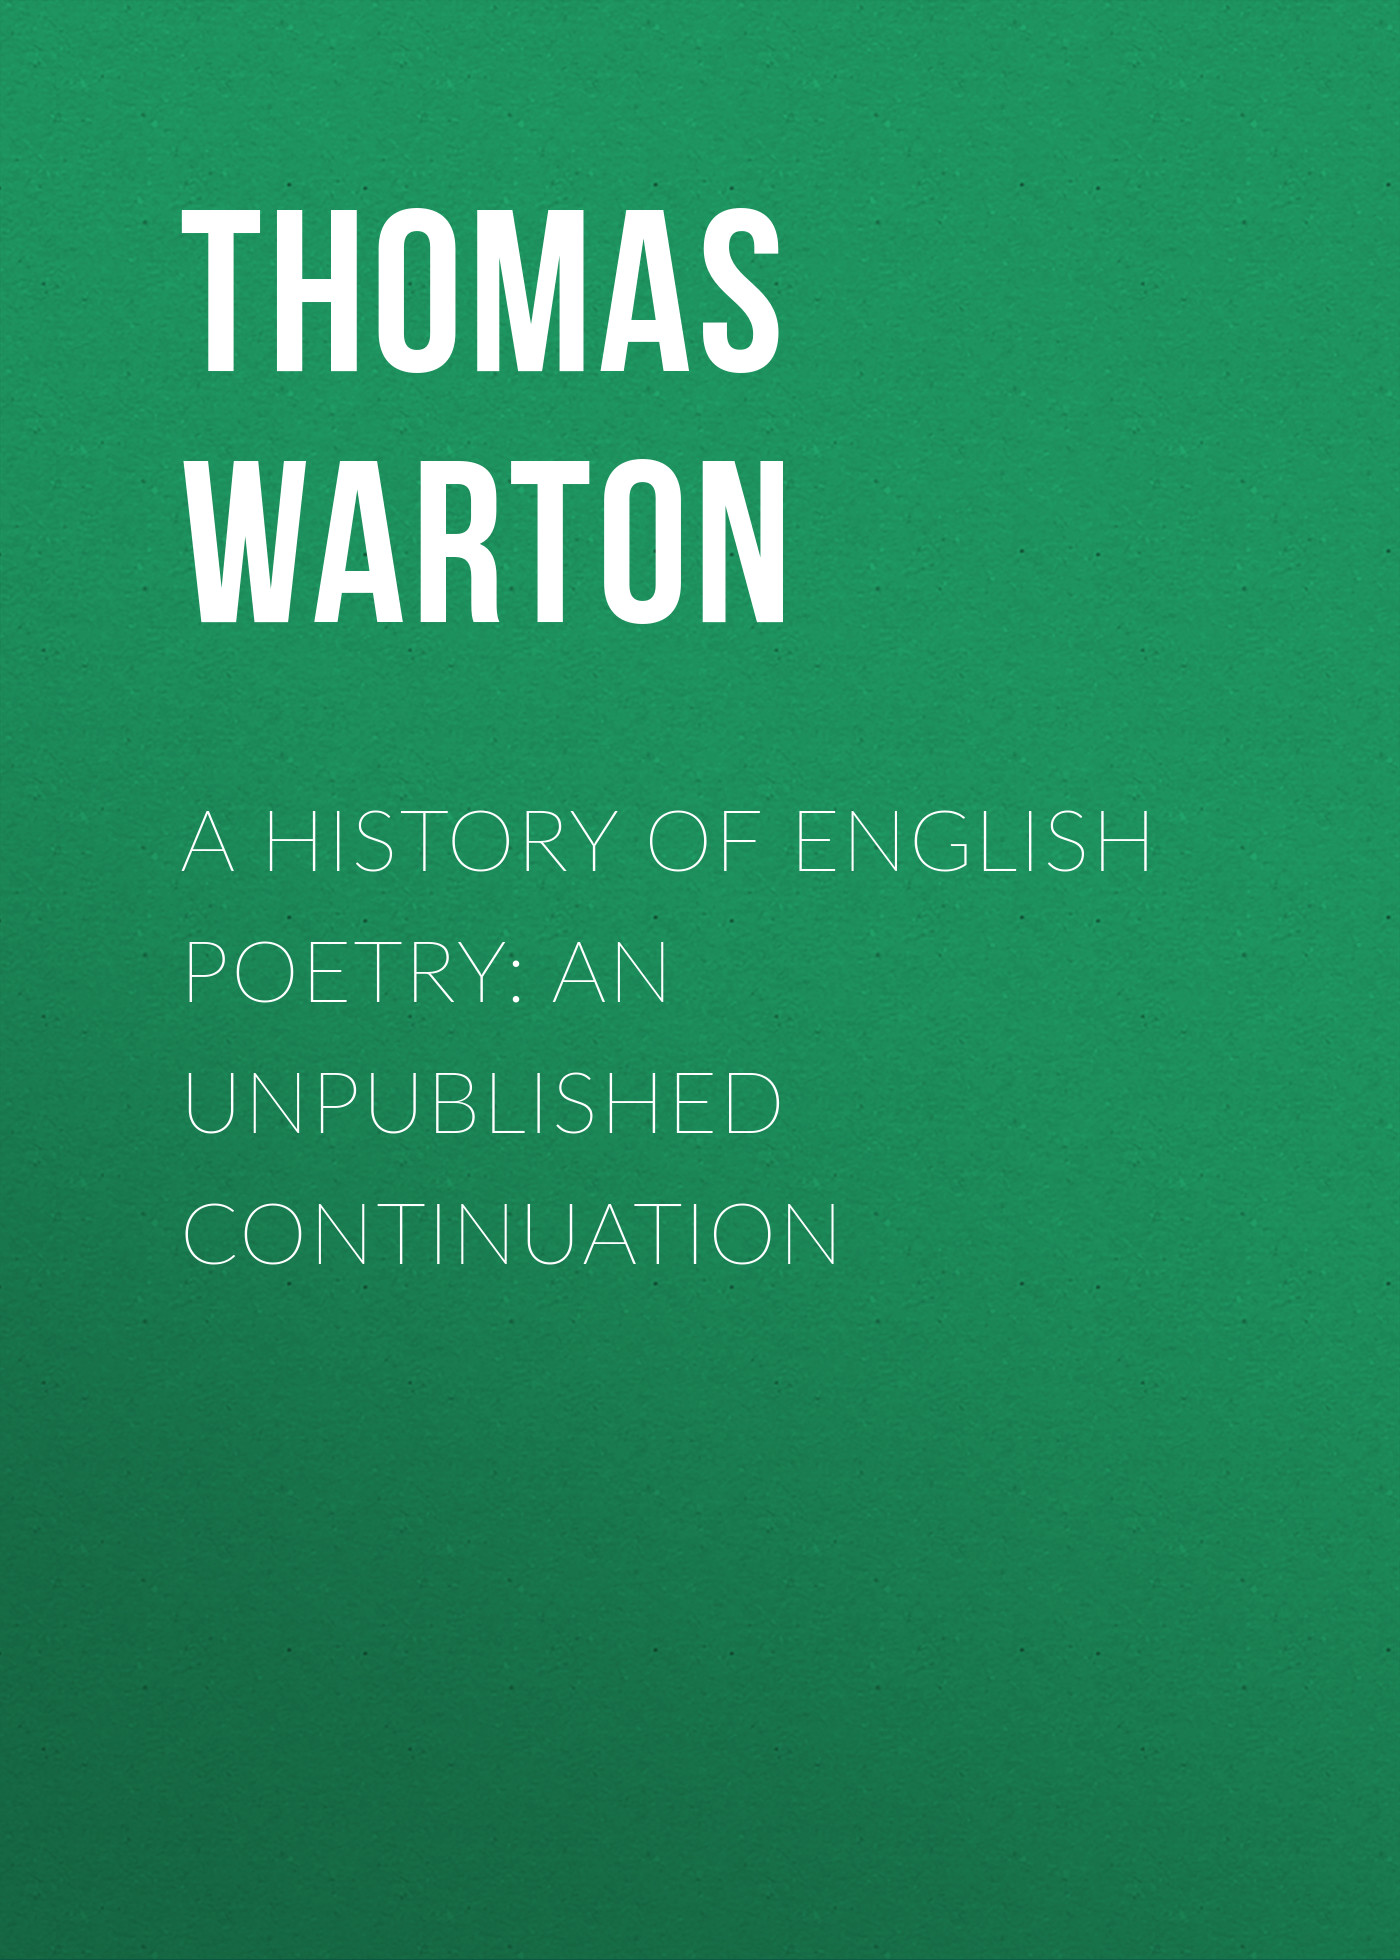 A History of English Poetry: an Unpublished Continuation